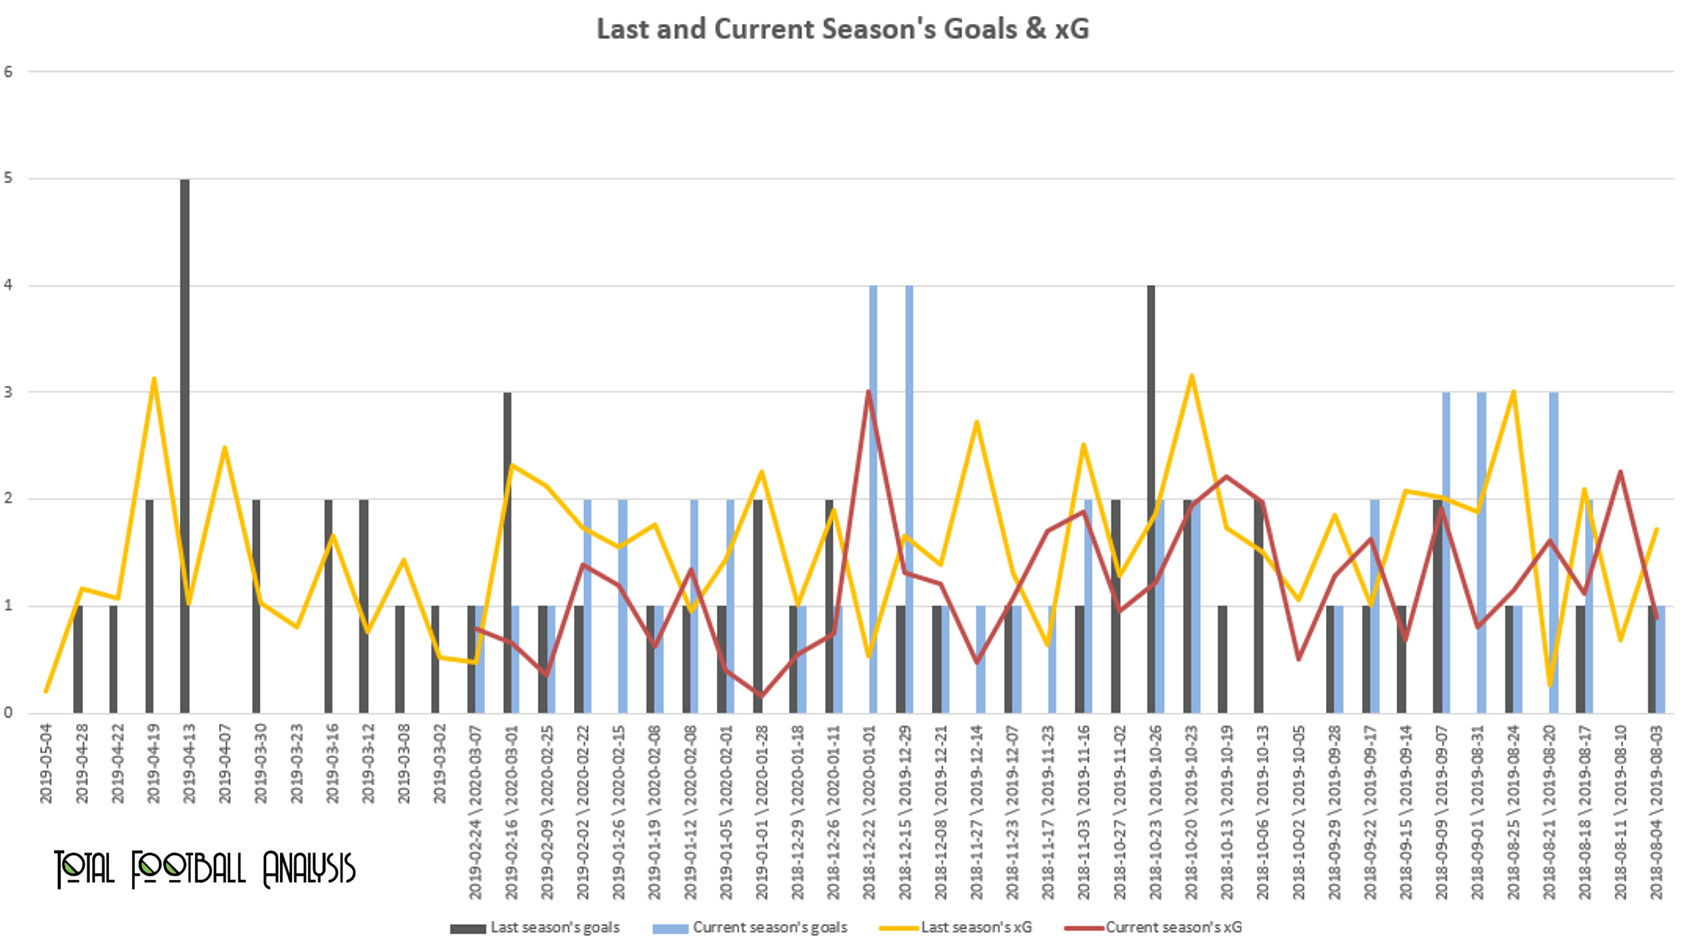 Finding the reasons for Coventry City's promotion in 2019/2020 - data analysis statistics